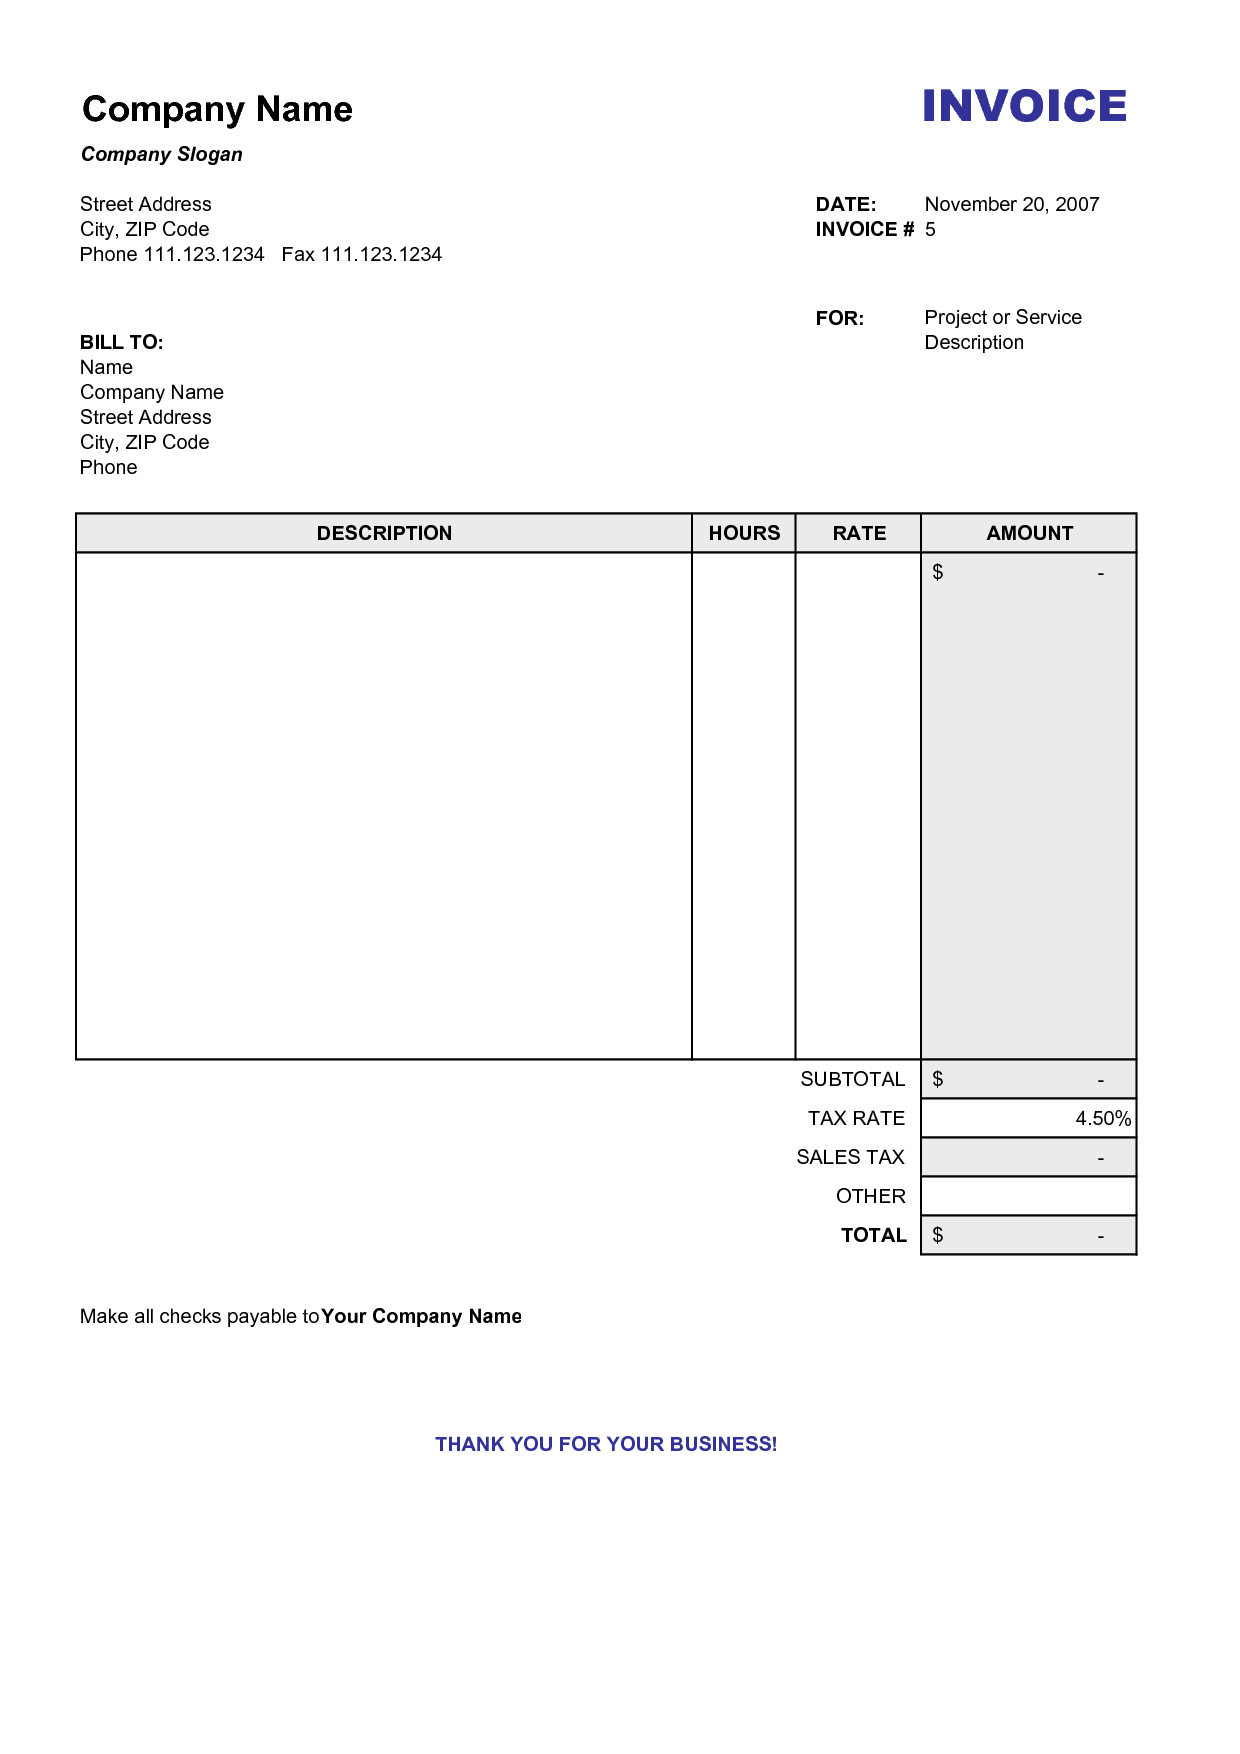 Free Printable Service Invoice Template and Blank Billing Invoice Scope Of Work Template organization